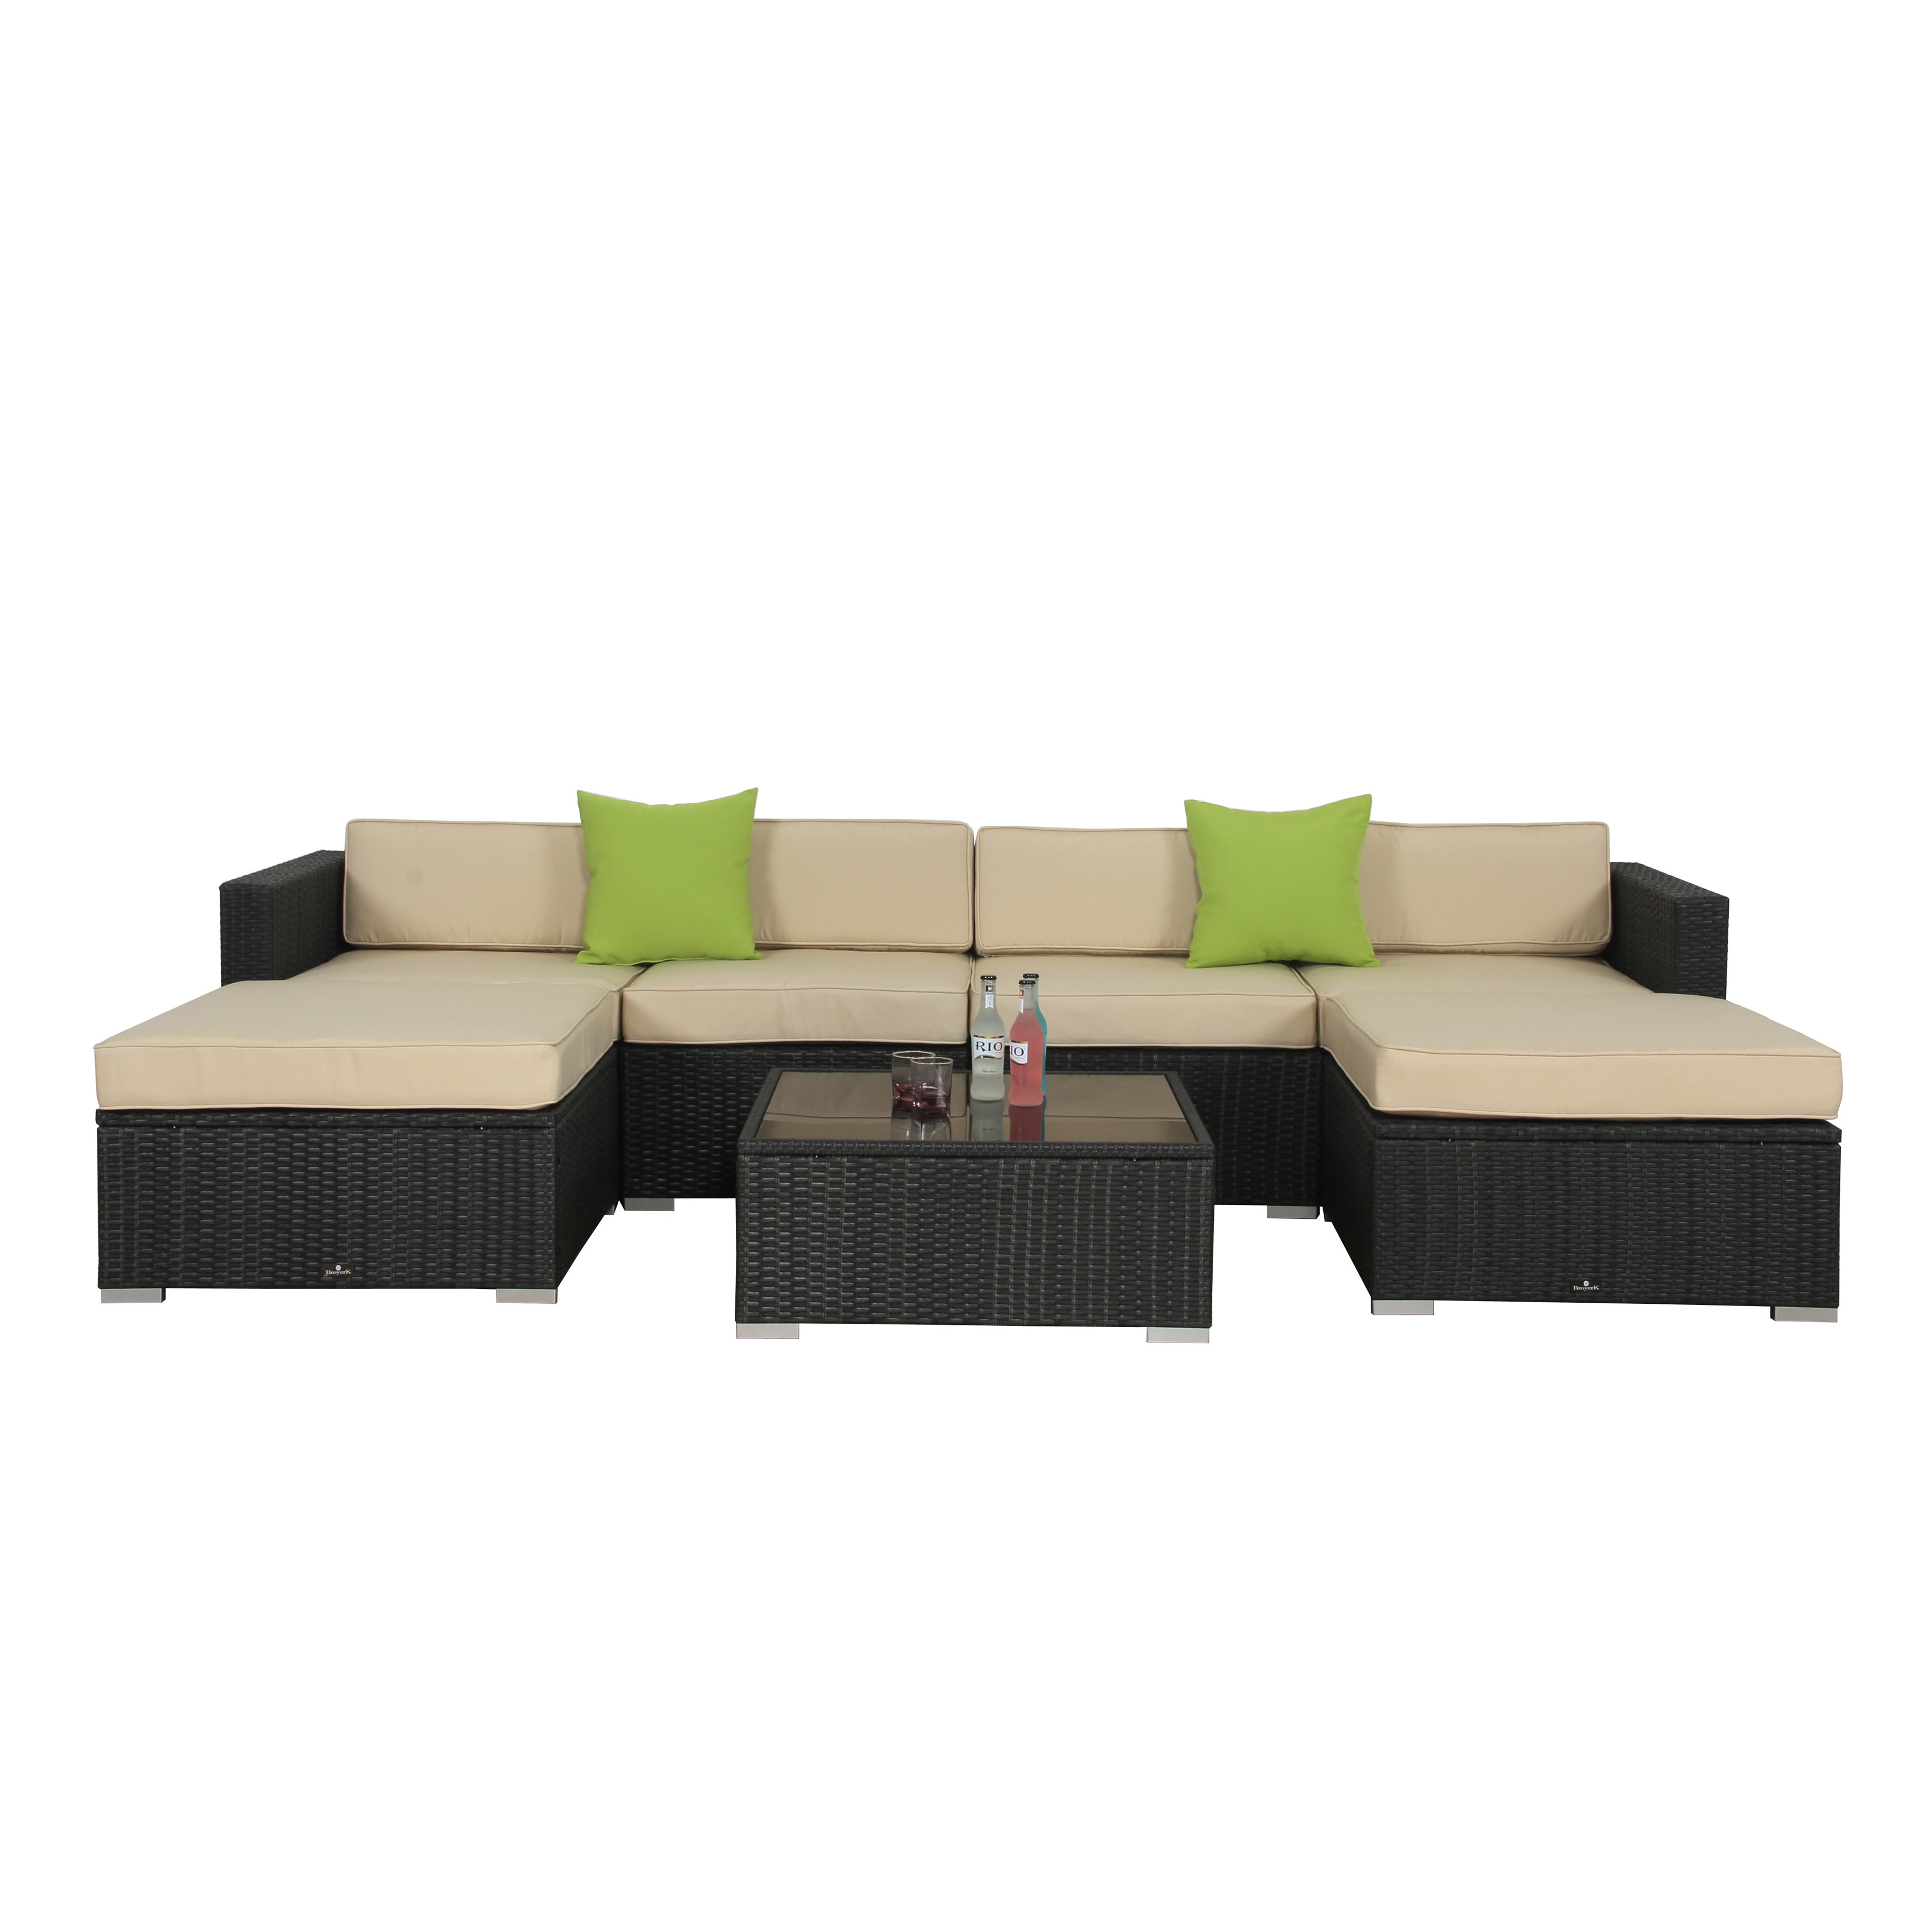 sets tulum amazing of co table df wicker at fresh walmart furniture patio clearance smsender